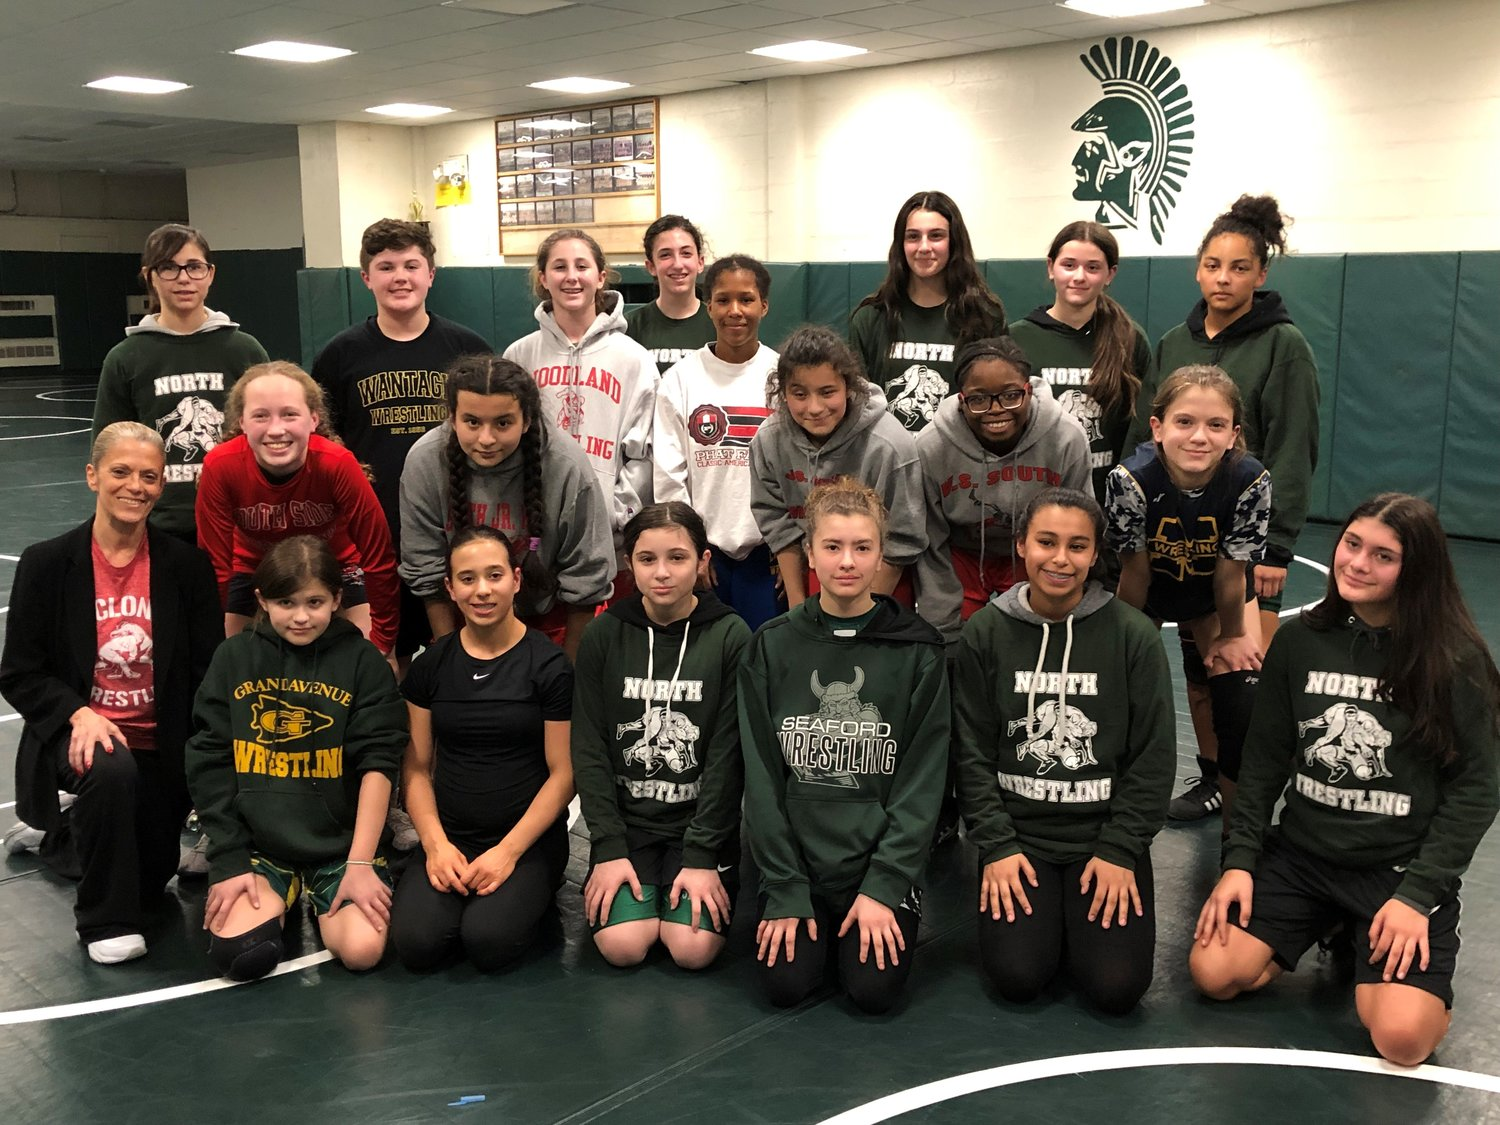 Nineteen girls, including South Side Middle School eighth-grader Mia Reisert, in red, competed in an all-girls wrestling event at Valley Stream North High School last month. Carol Roseto, the Rockville Centre School District's athletic director, left, joined them,